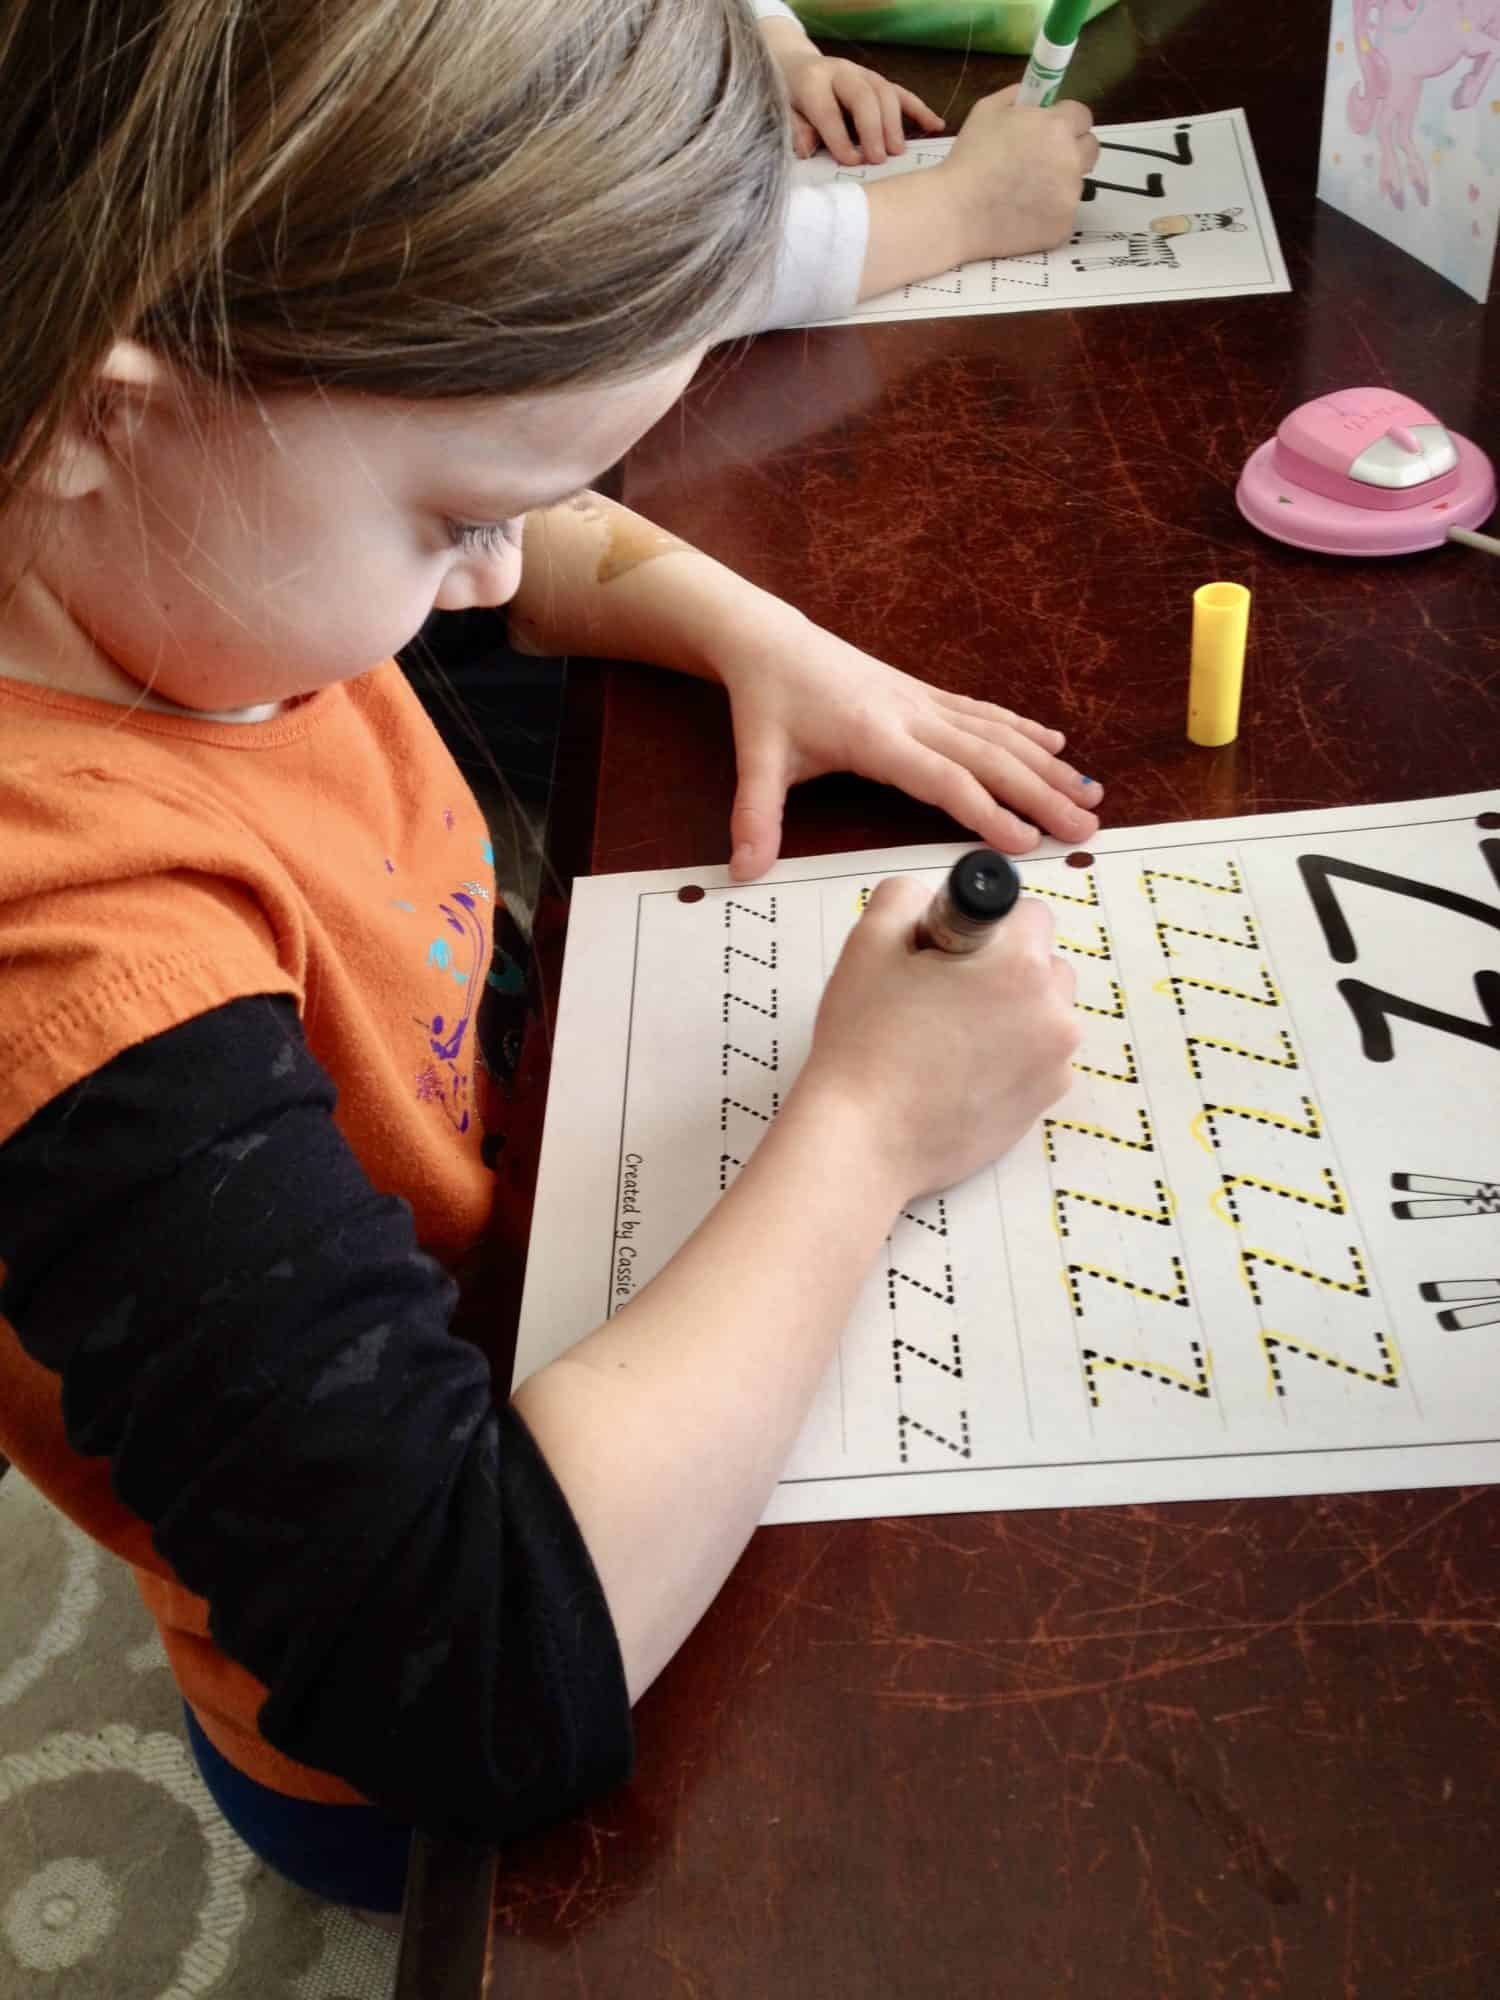 Preschool-aged girls working on tracing the letter z.